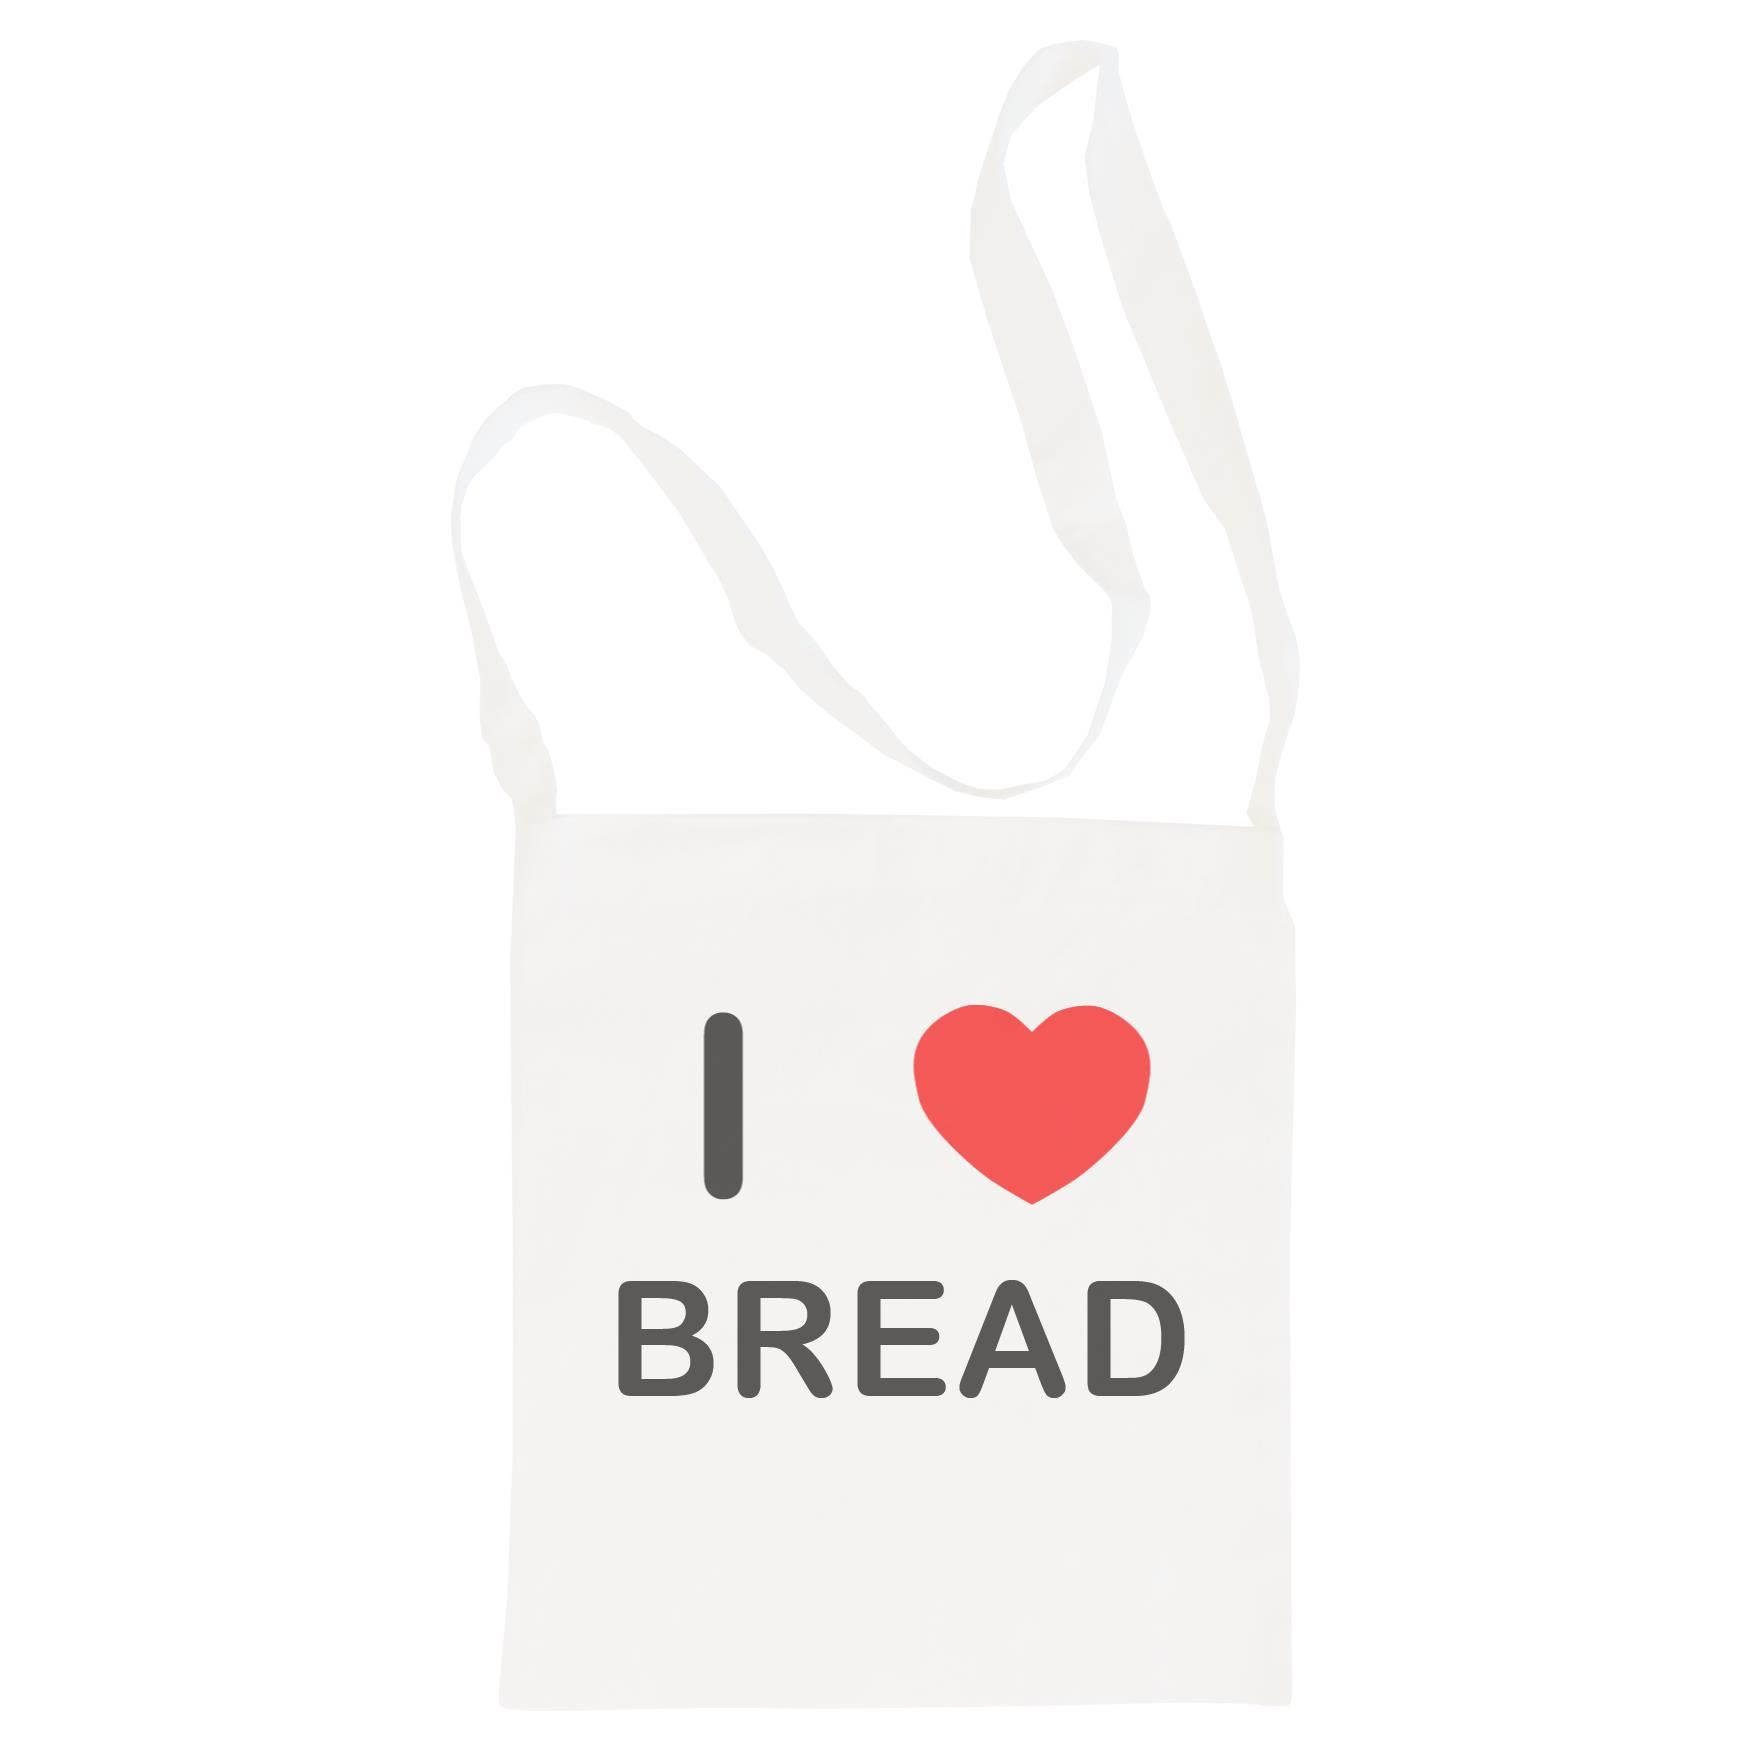 I Love Bread - Cotton Bag | Size choice Tote, Shopper or Sling